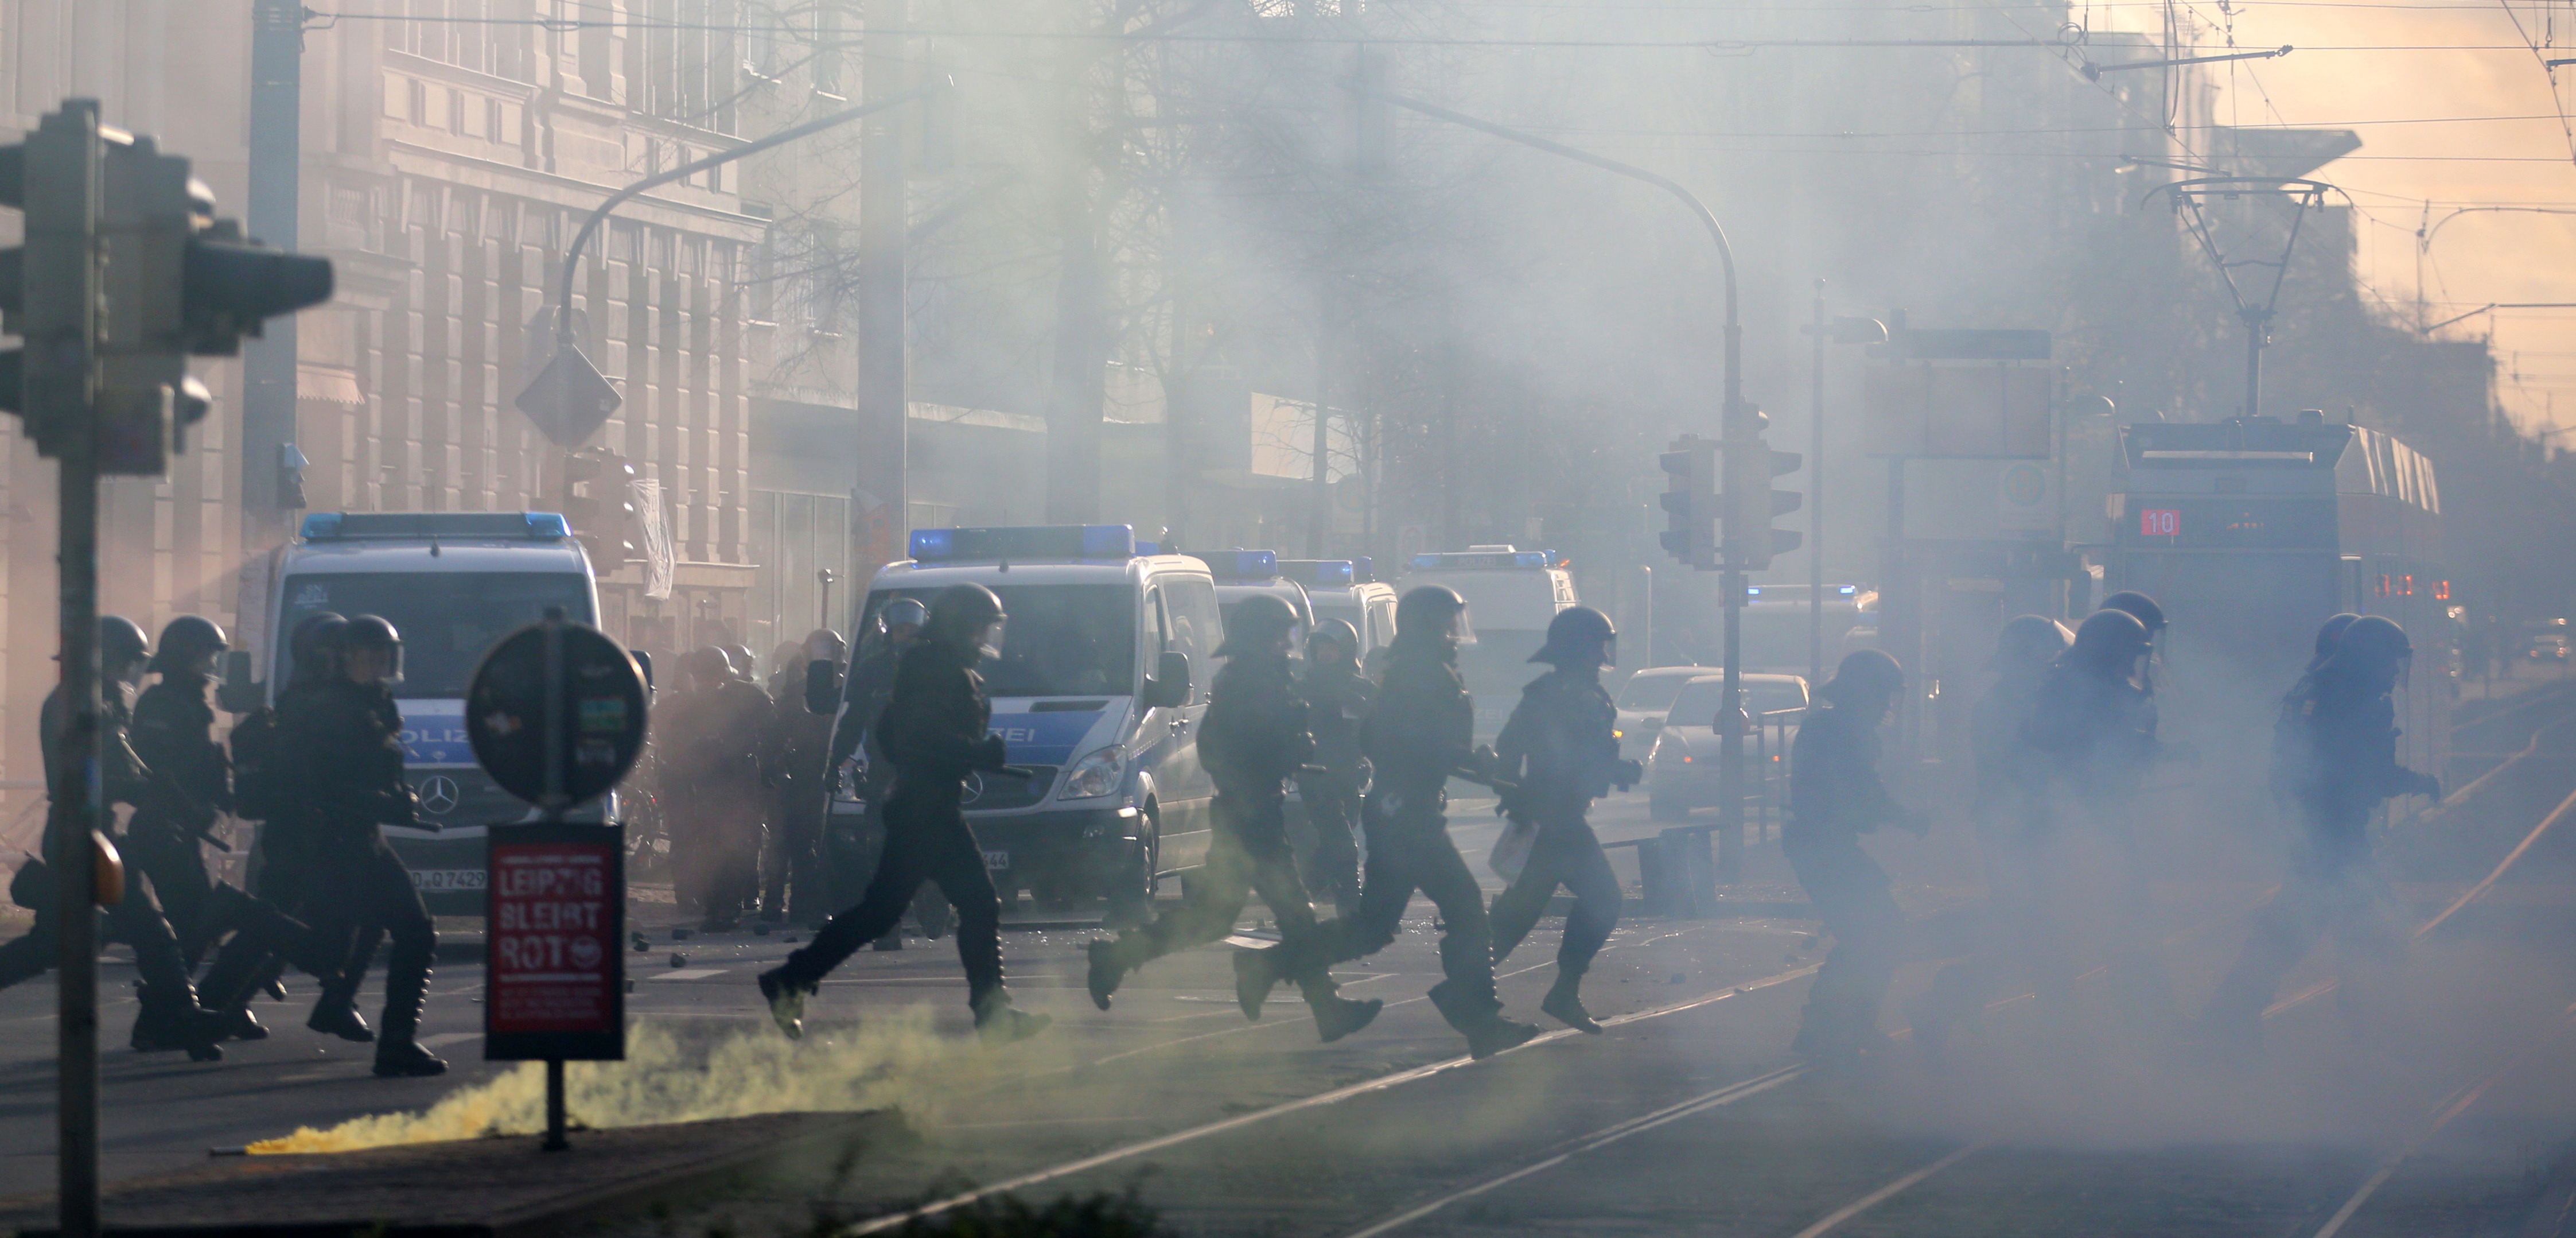 German police  cross a street as they secure the area during clashes with left-wing protesters  in Leipzig,u00a0Germany on December 12, 2015. Photo: Reuters